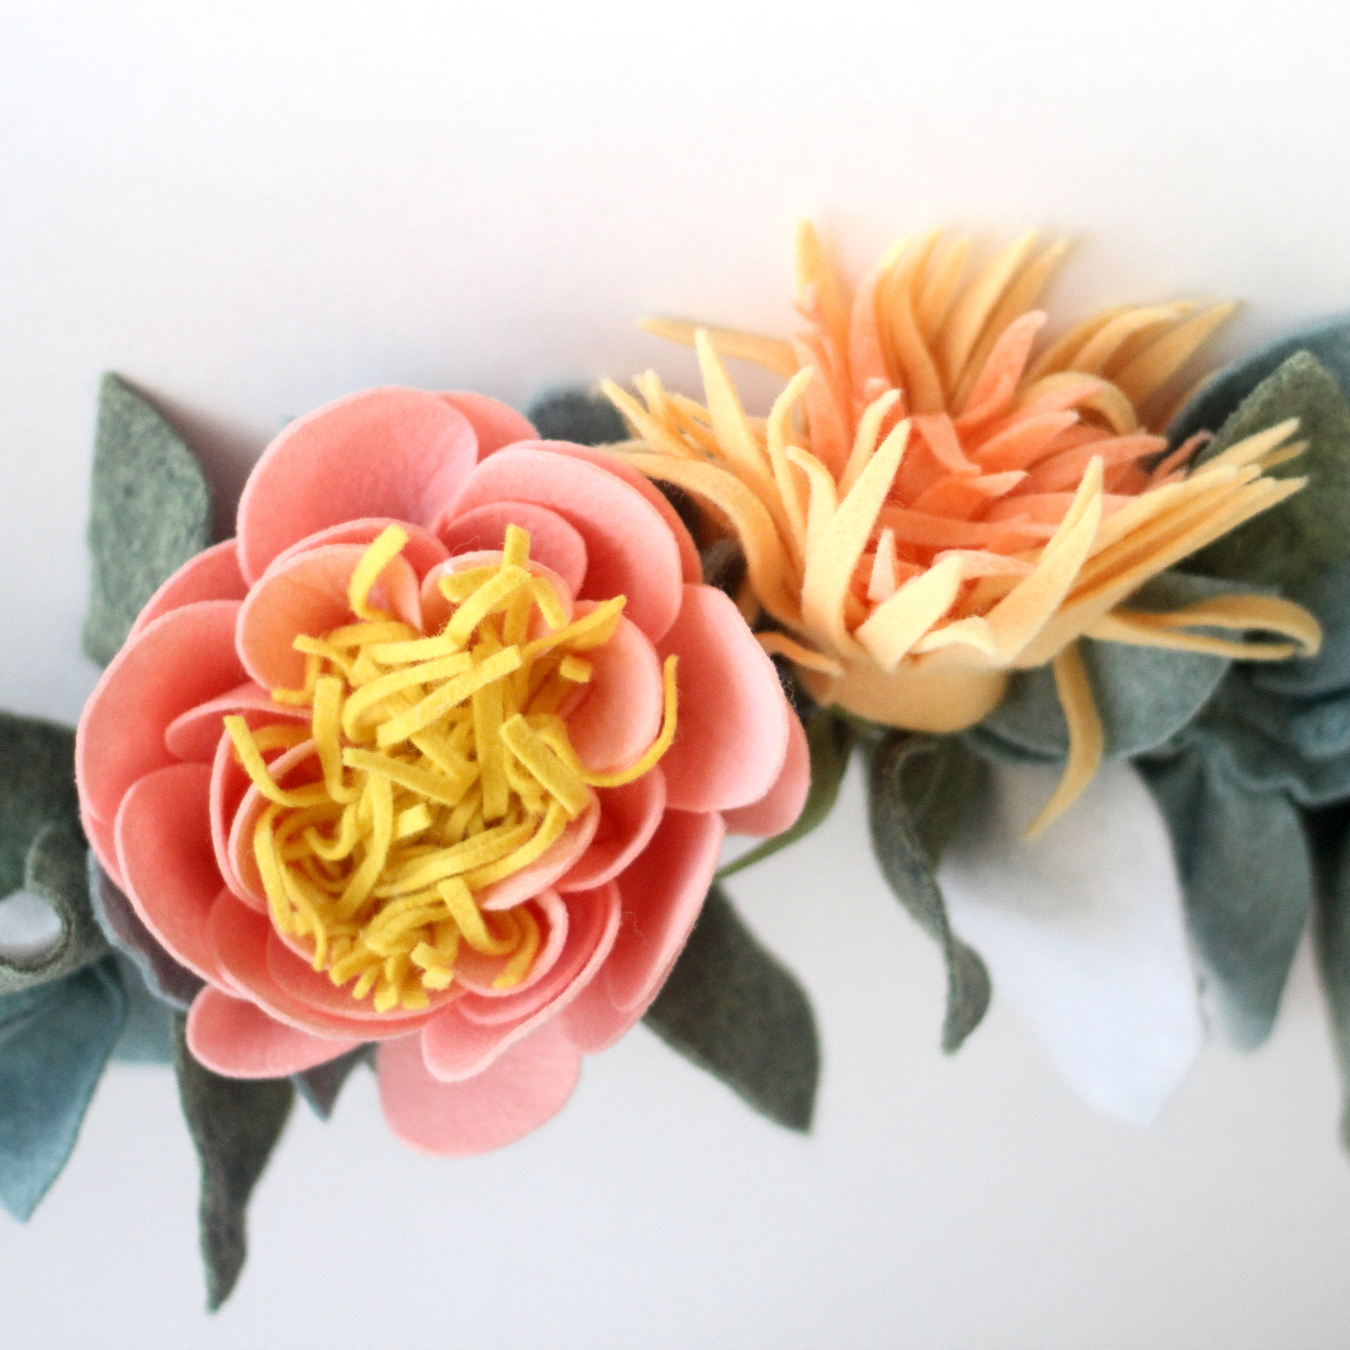 How to make the most beautiful felt flower garland the most beautiful felt floral garland and how to make one izmirmasajfo